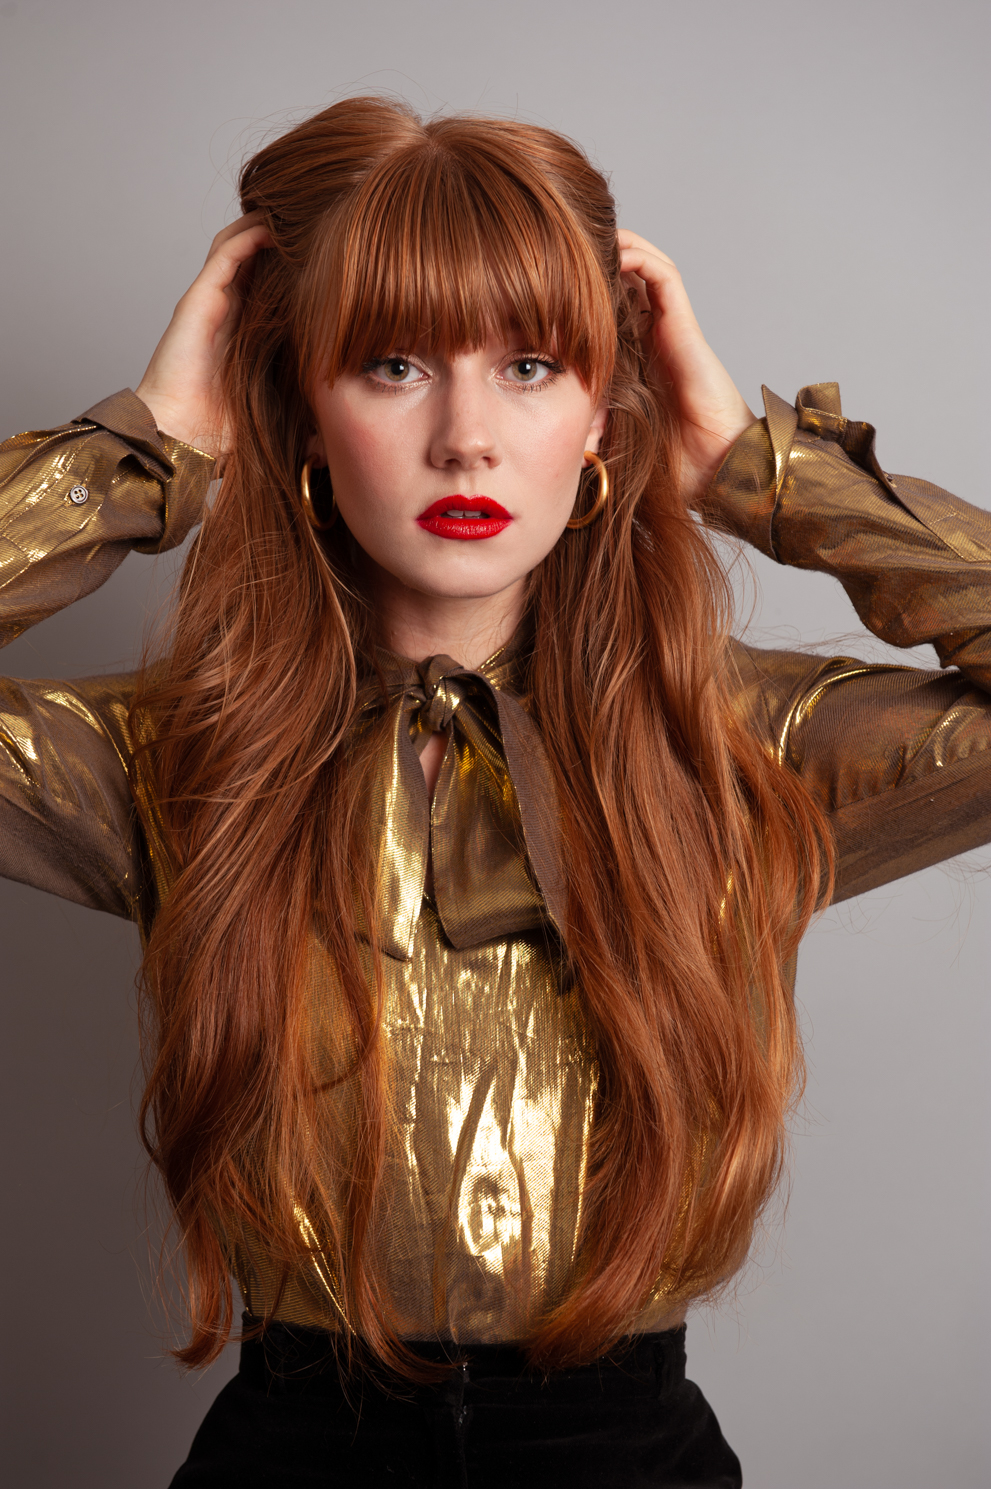 Redhead in gold. Fashion photography by Farnham, Surrey based portrait photographer James Muller